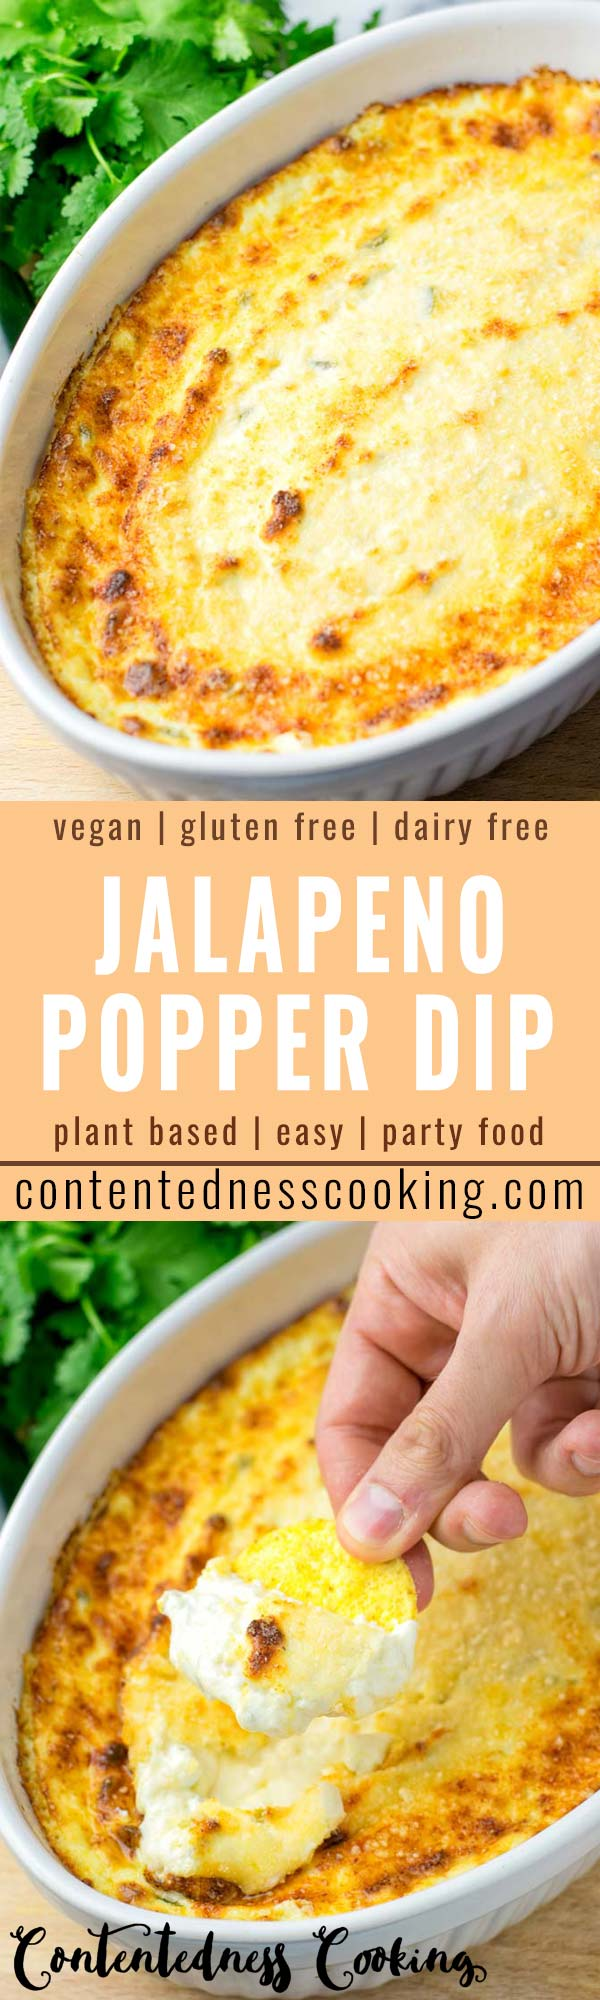 This Jalapeno Popper Dip is easy to make and delish hot or cold. If you are looking for a not only vegetarian but also vegan jalapeno dip recipe, this is the best one for you. It is super satisfying packed with flavors, great for parties, dinner, lunch, meal prep.